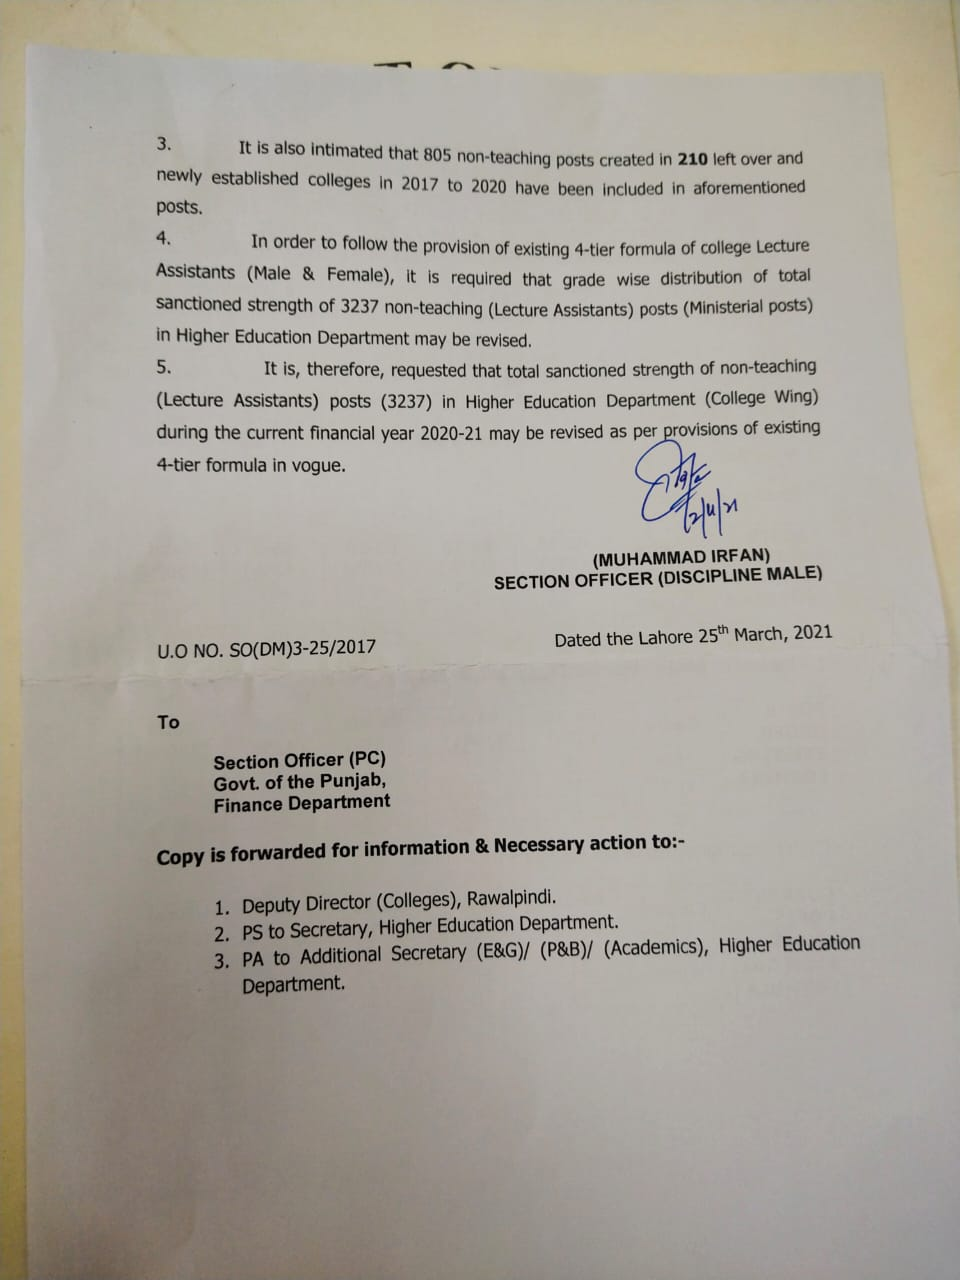 Upgradation of Posts of Lecturers Assistant HED